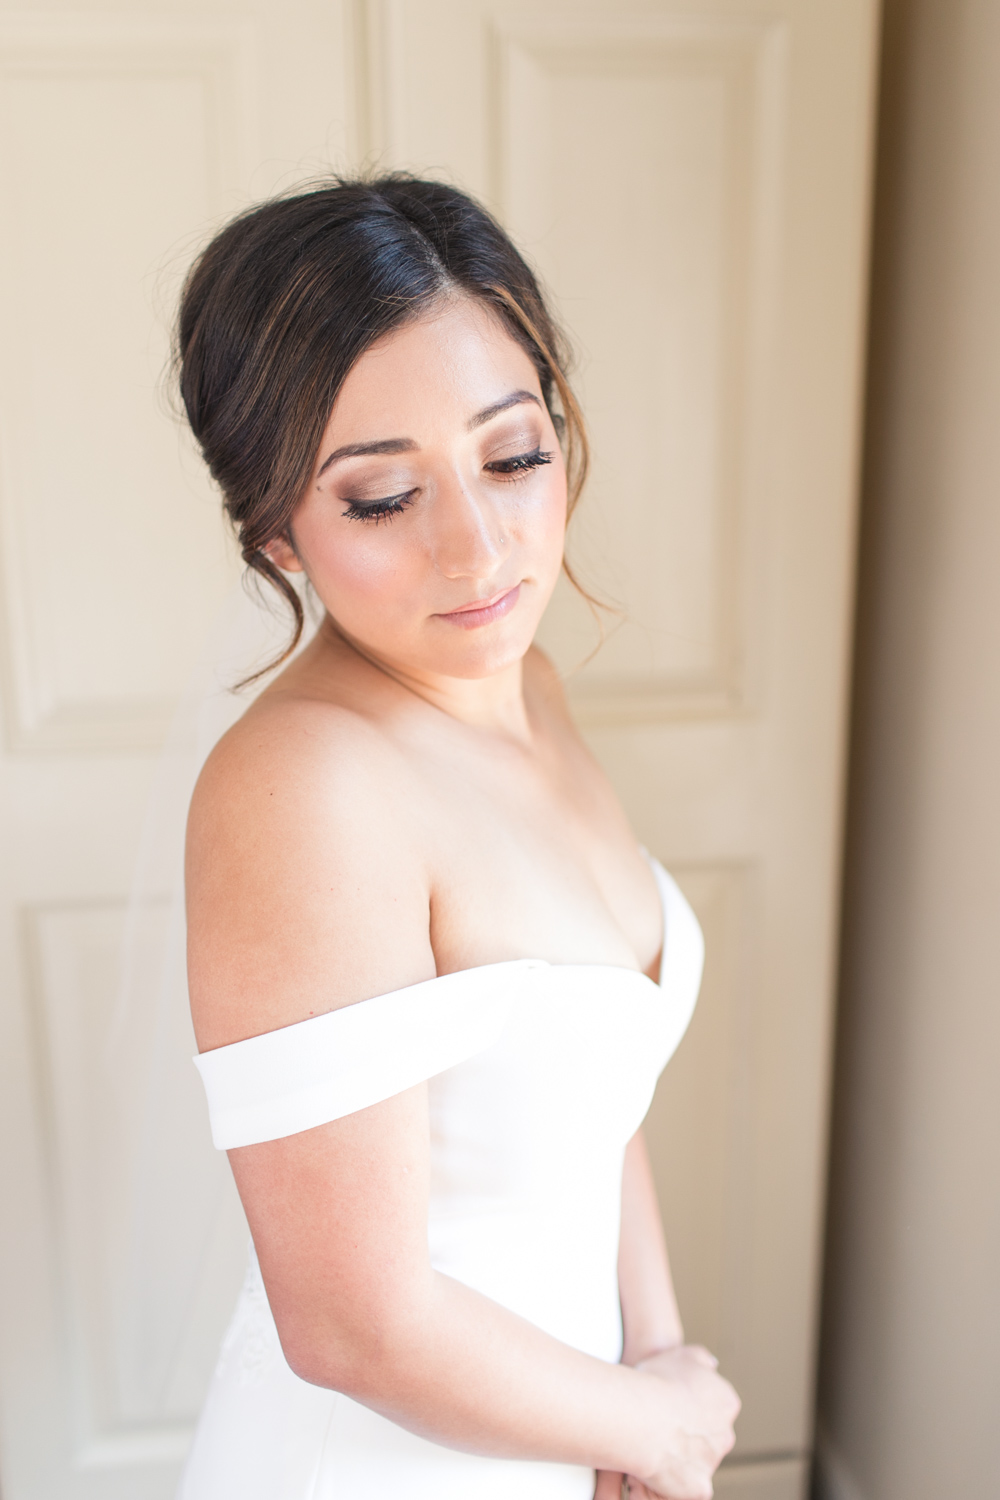 bridal portrait while she is getting ready showing off her light pink eyeshadow and an up style hairstyle with an off shoulder wedding dress